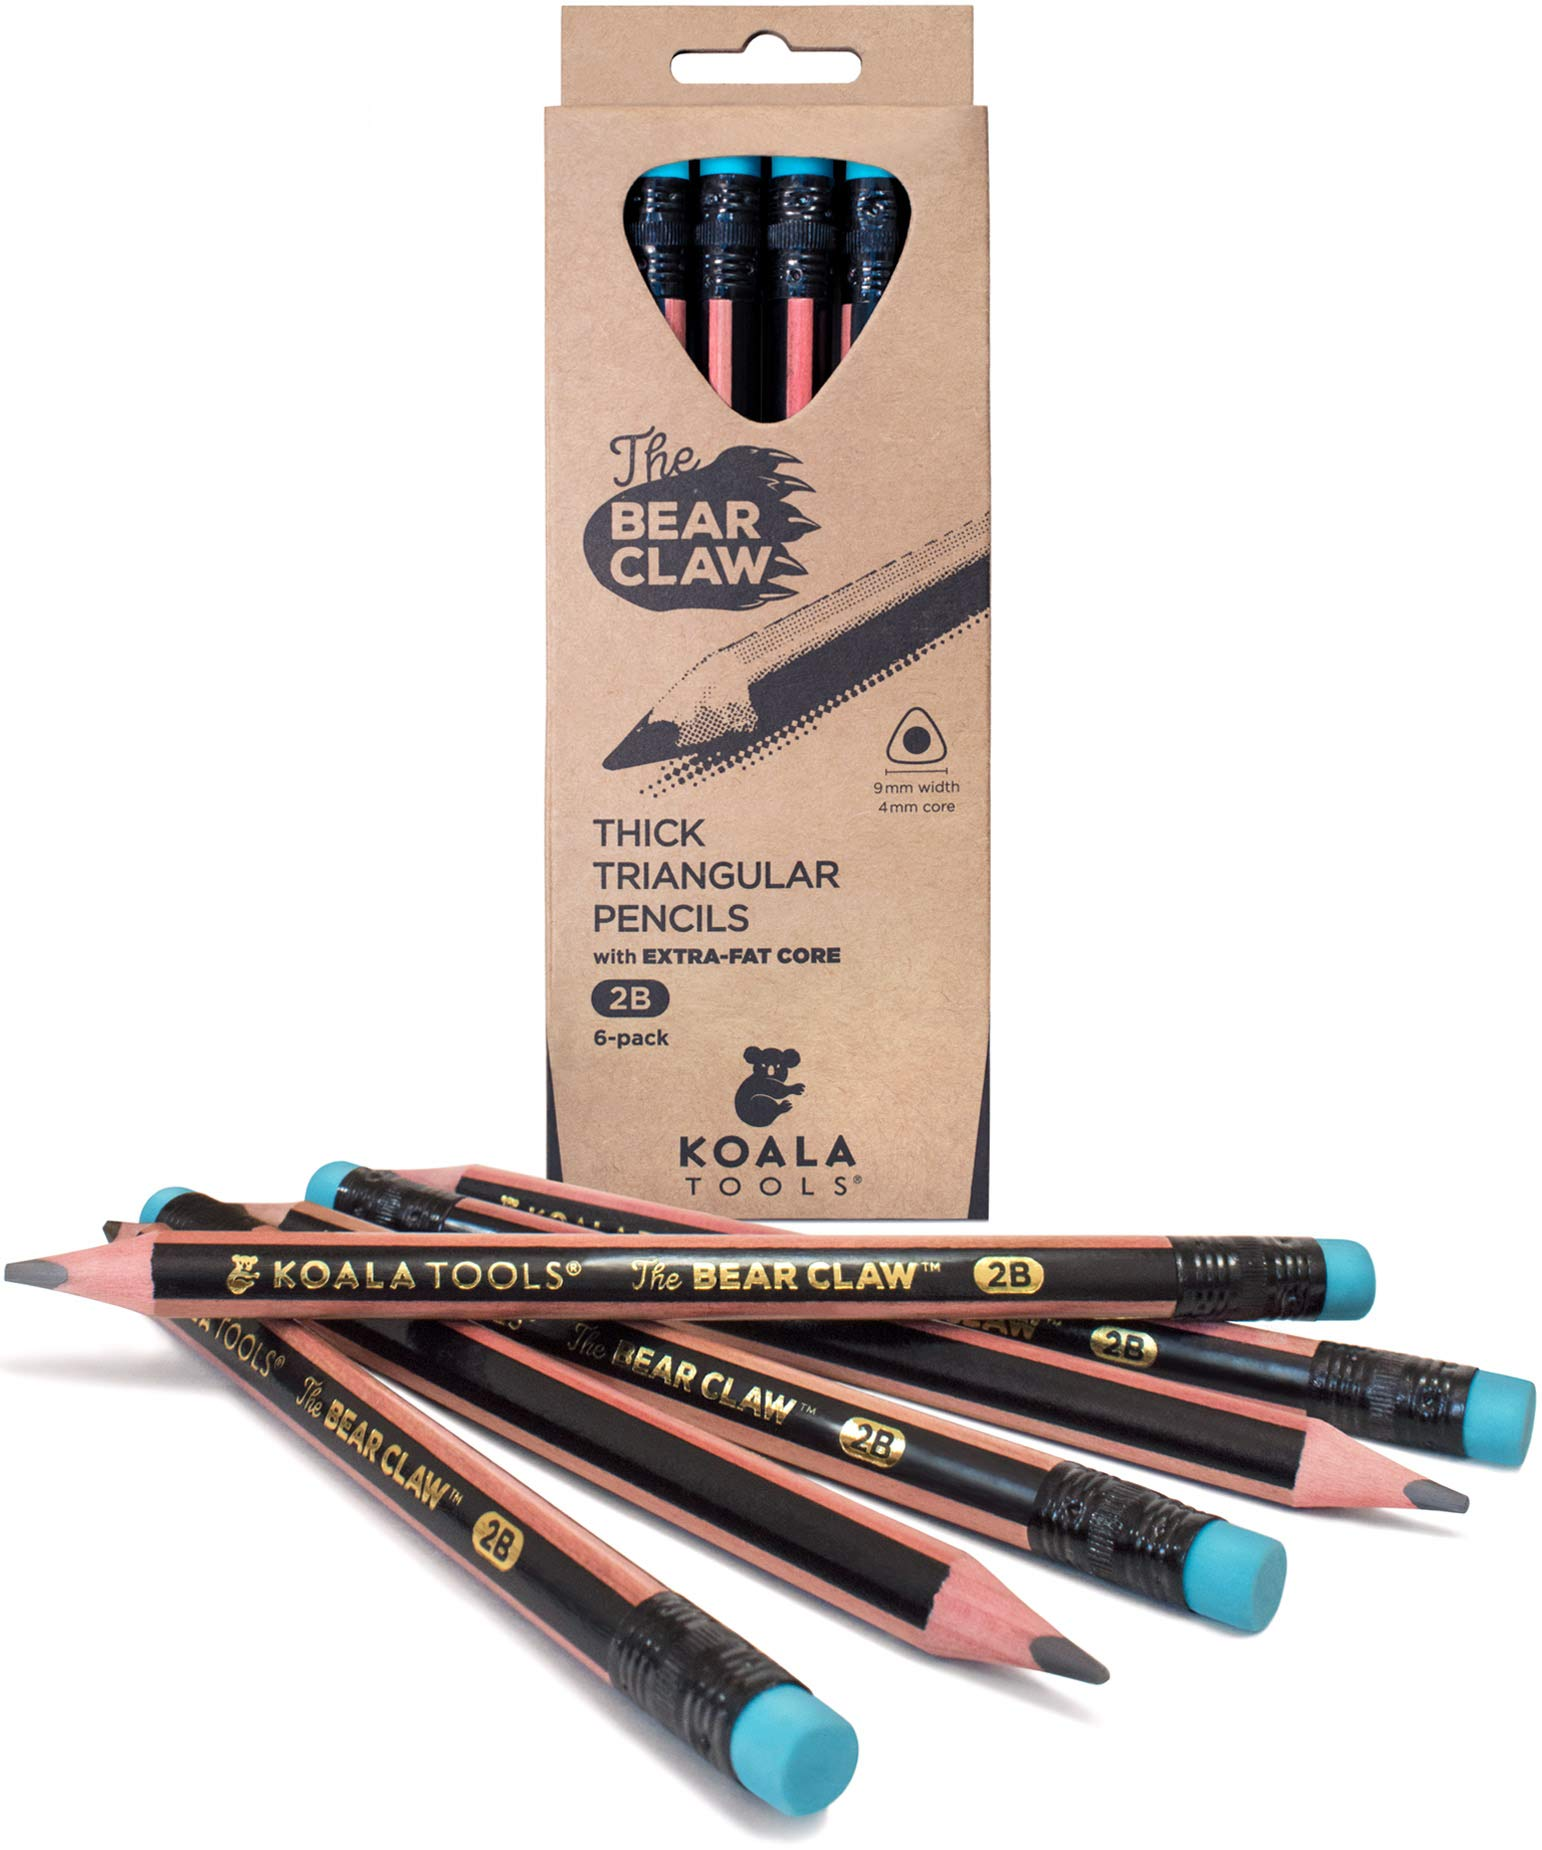 Koala Tools | Bear Claw Pencils (pack of 6) - Fat, Thick, Strong, Triangular Grip, Graphite, 2B Lead with Eraser - Suitable for Kids, Art, Drawing, Drafting, Sketching & Shading by Koala Tools